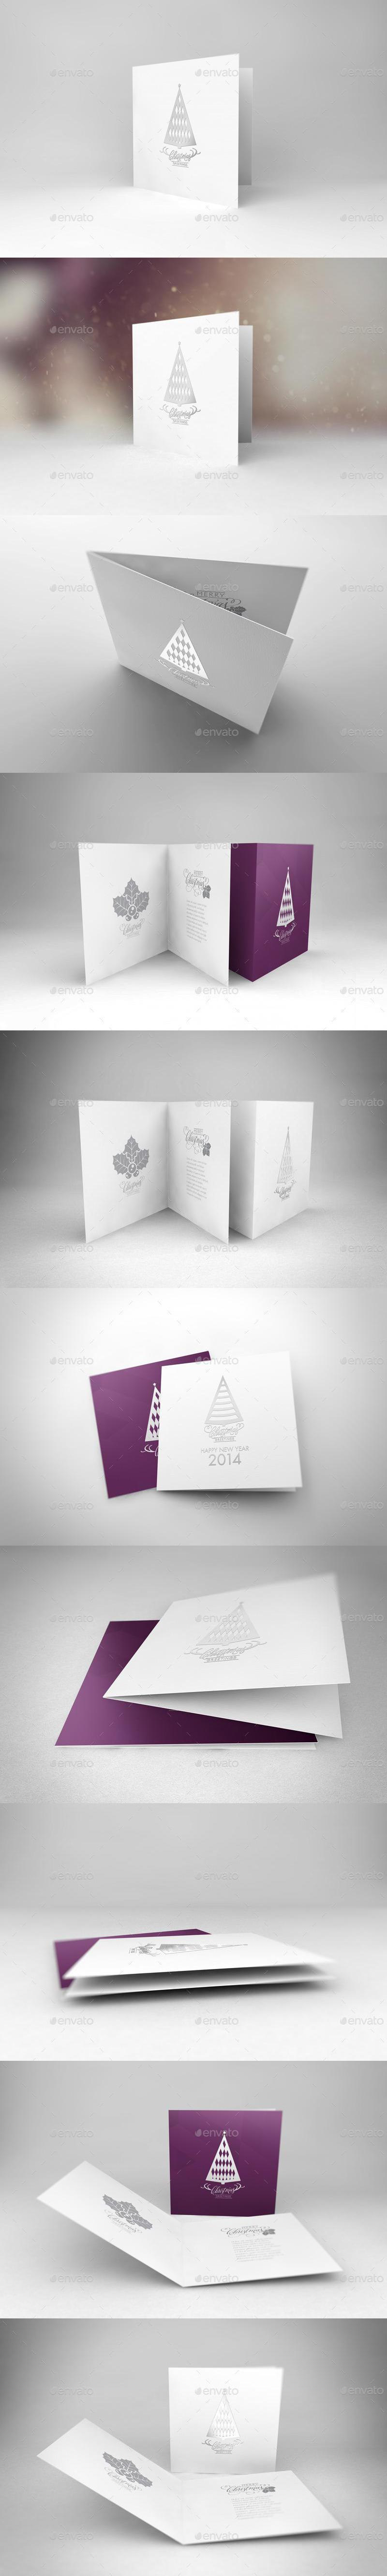 Realistic Greeting Card Mockups